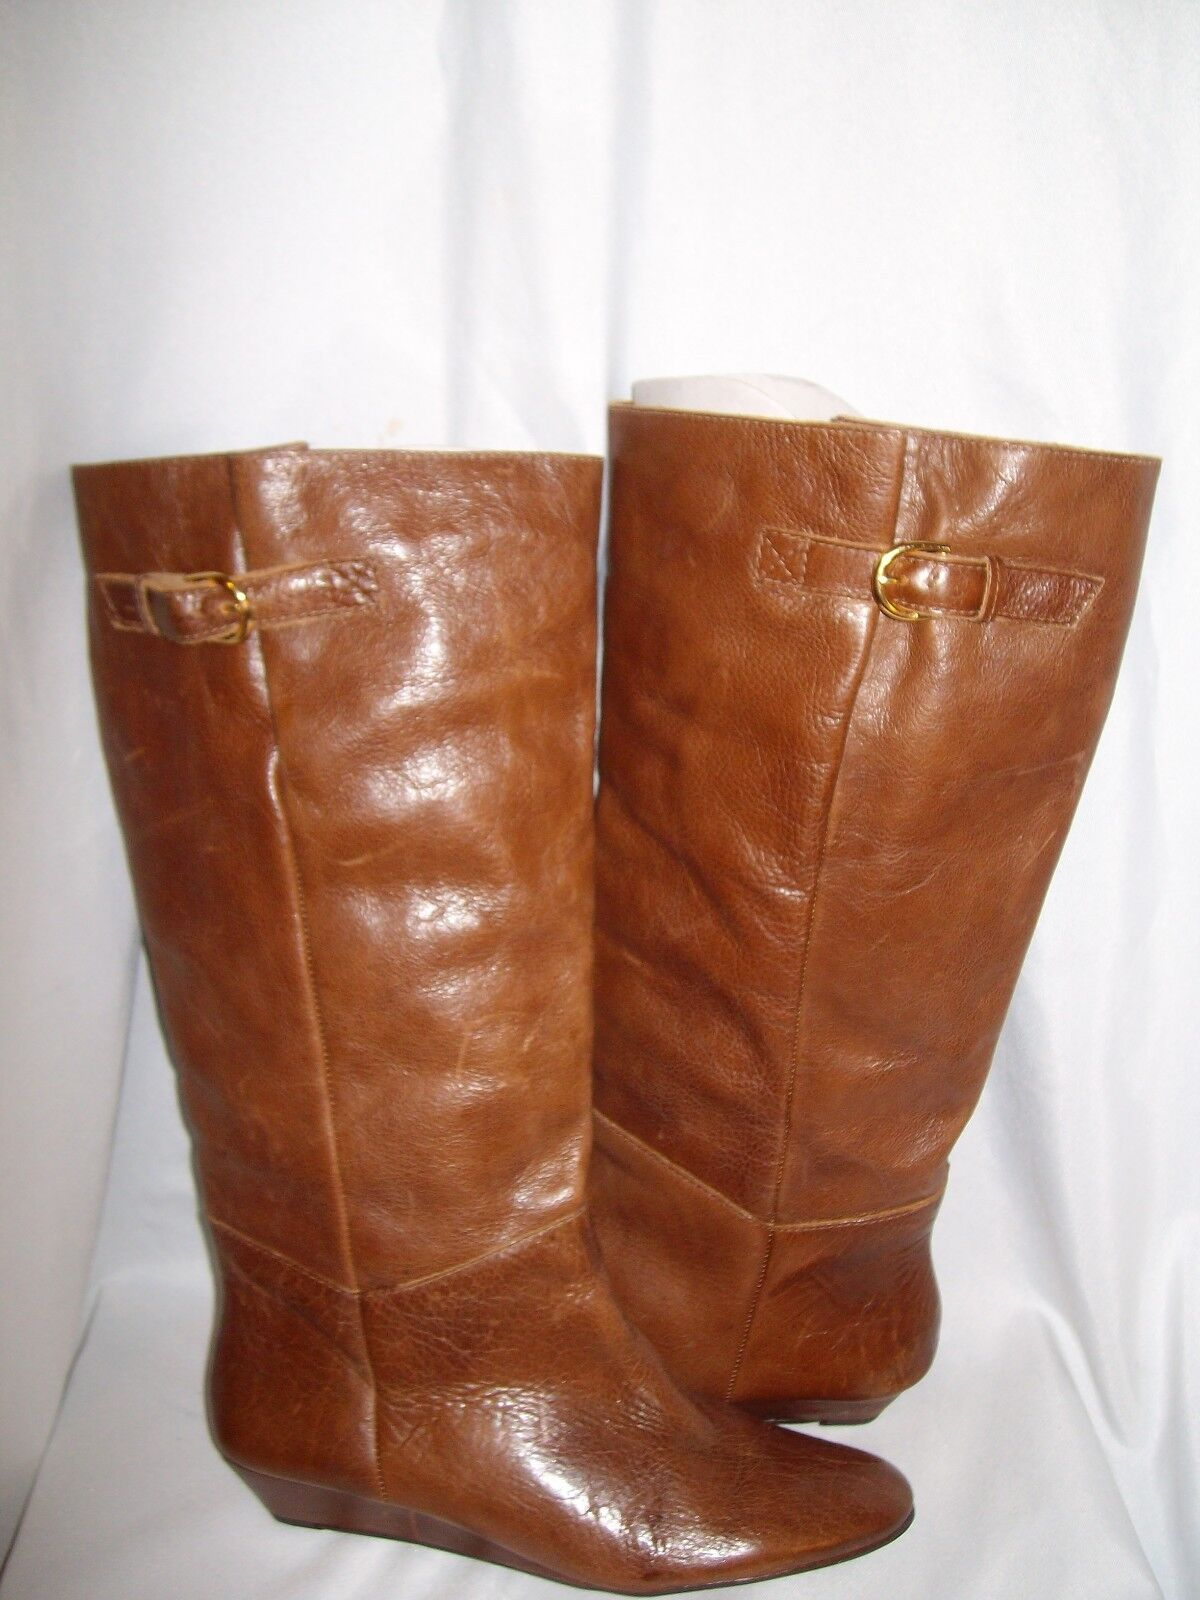 Steven Steve Madden Intyce Brown Leather New Womens Knee High Boots Shoes 6 M